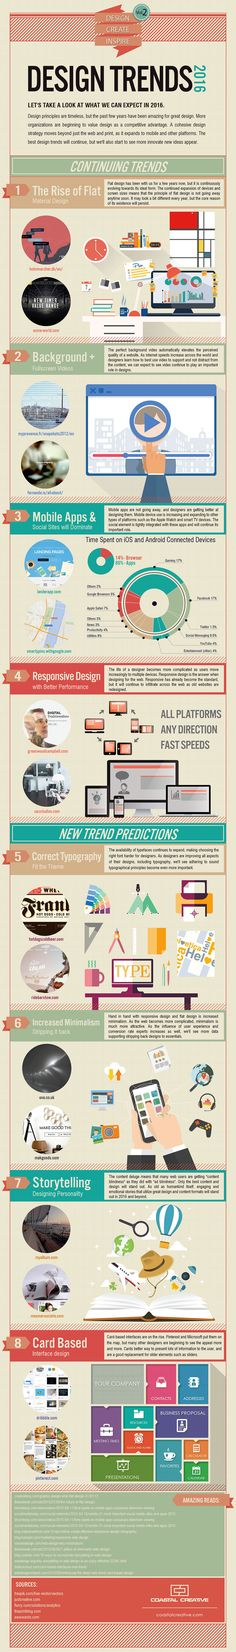 Web Design Trends 2016 -- Website Magazine's WebMag.co provides infographics, videos and more for 'Net professionals.